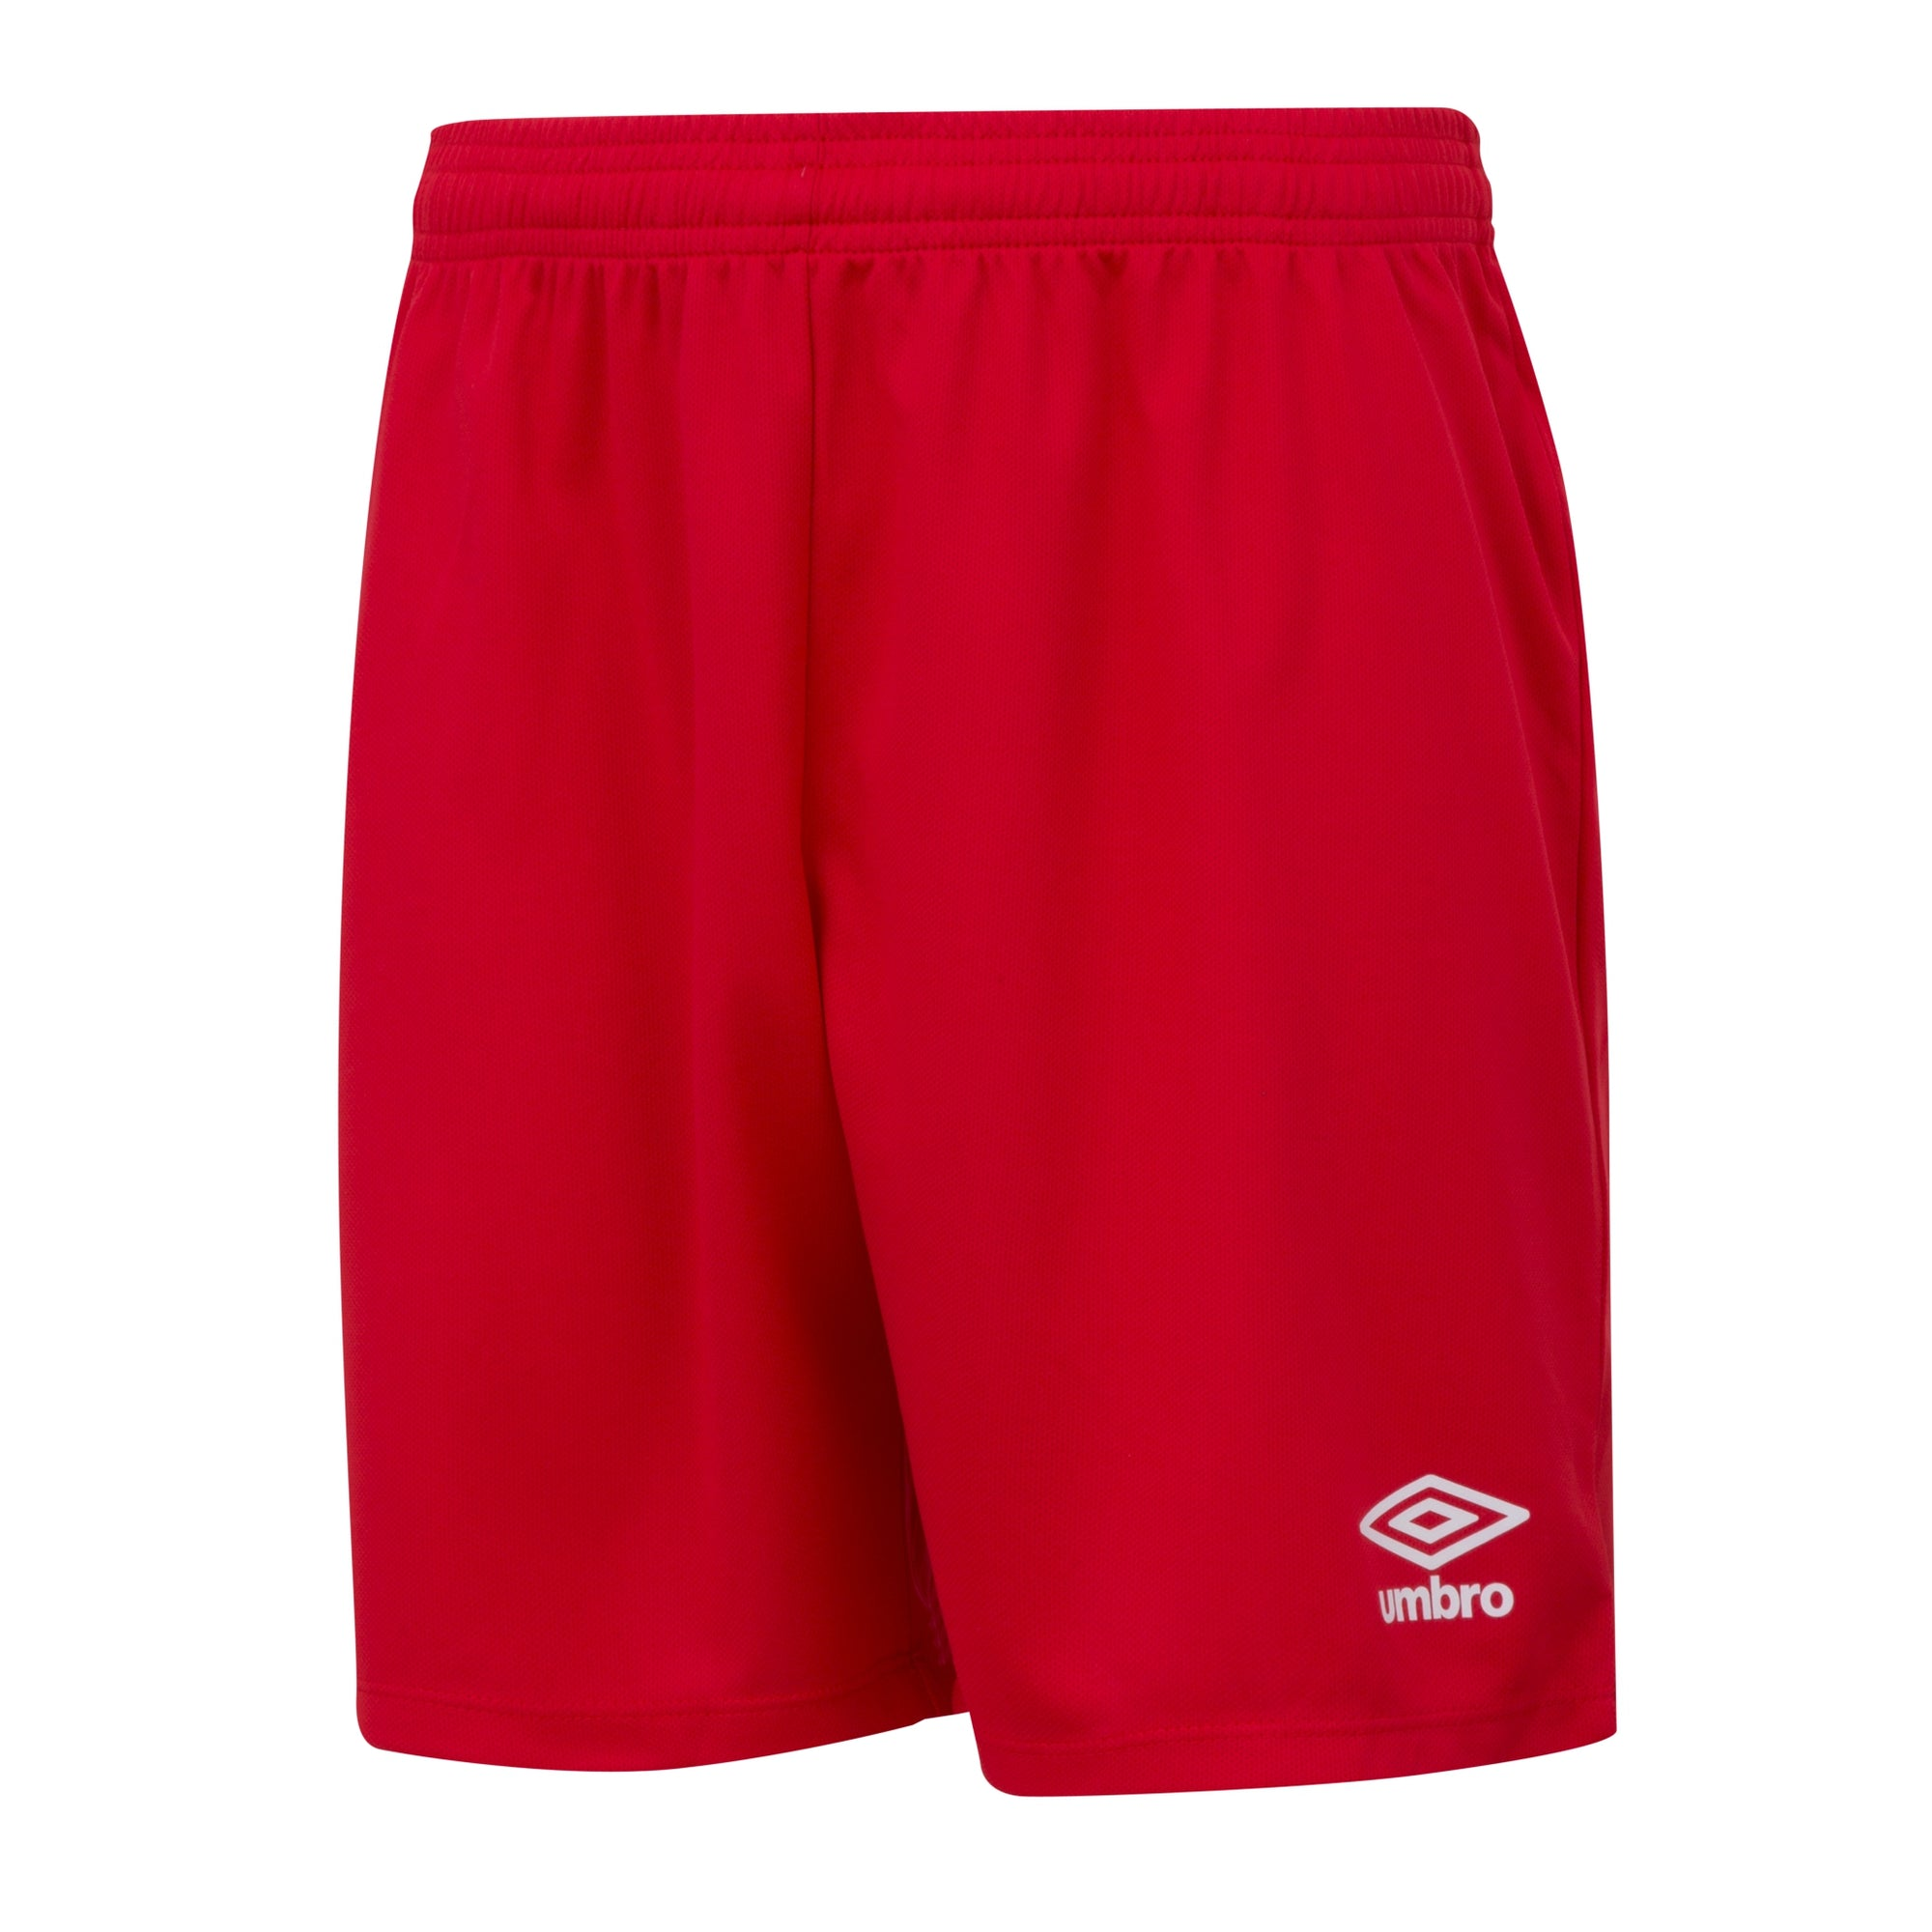 Umbro Club Short II - Vermillion